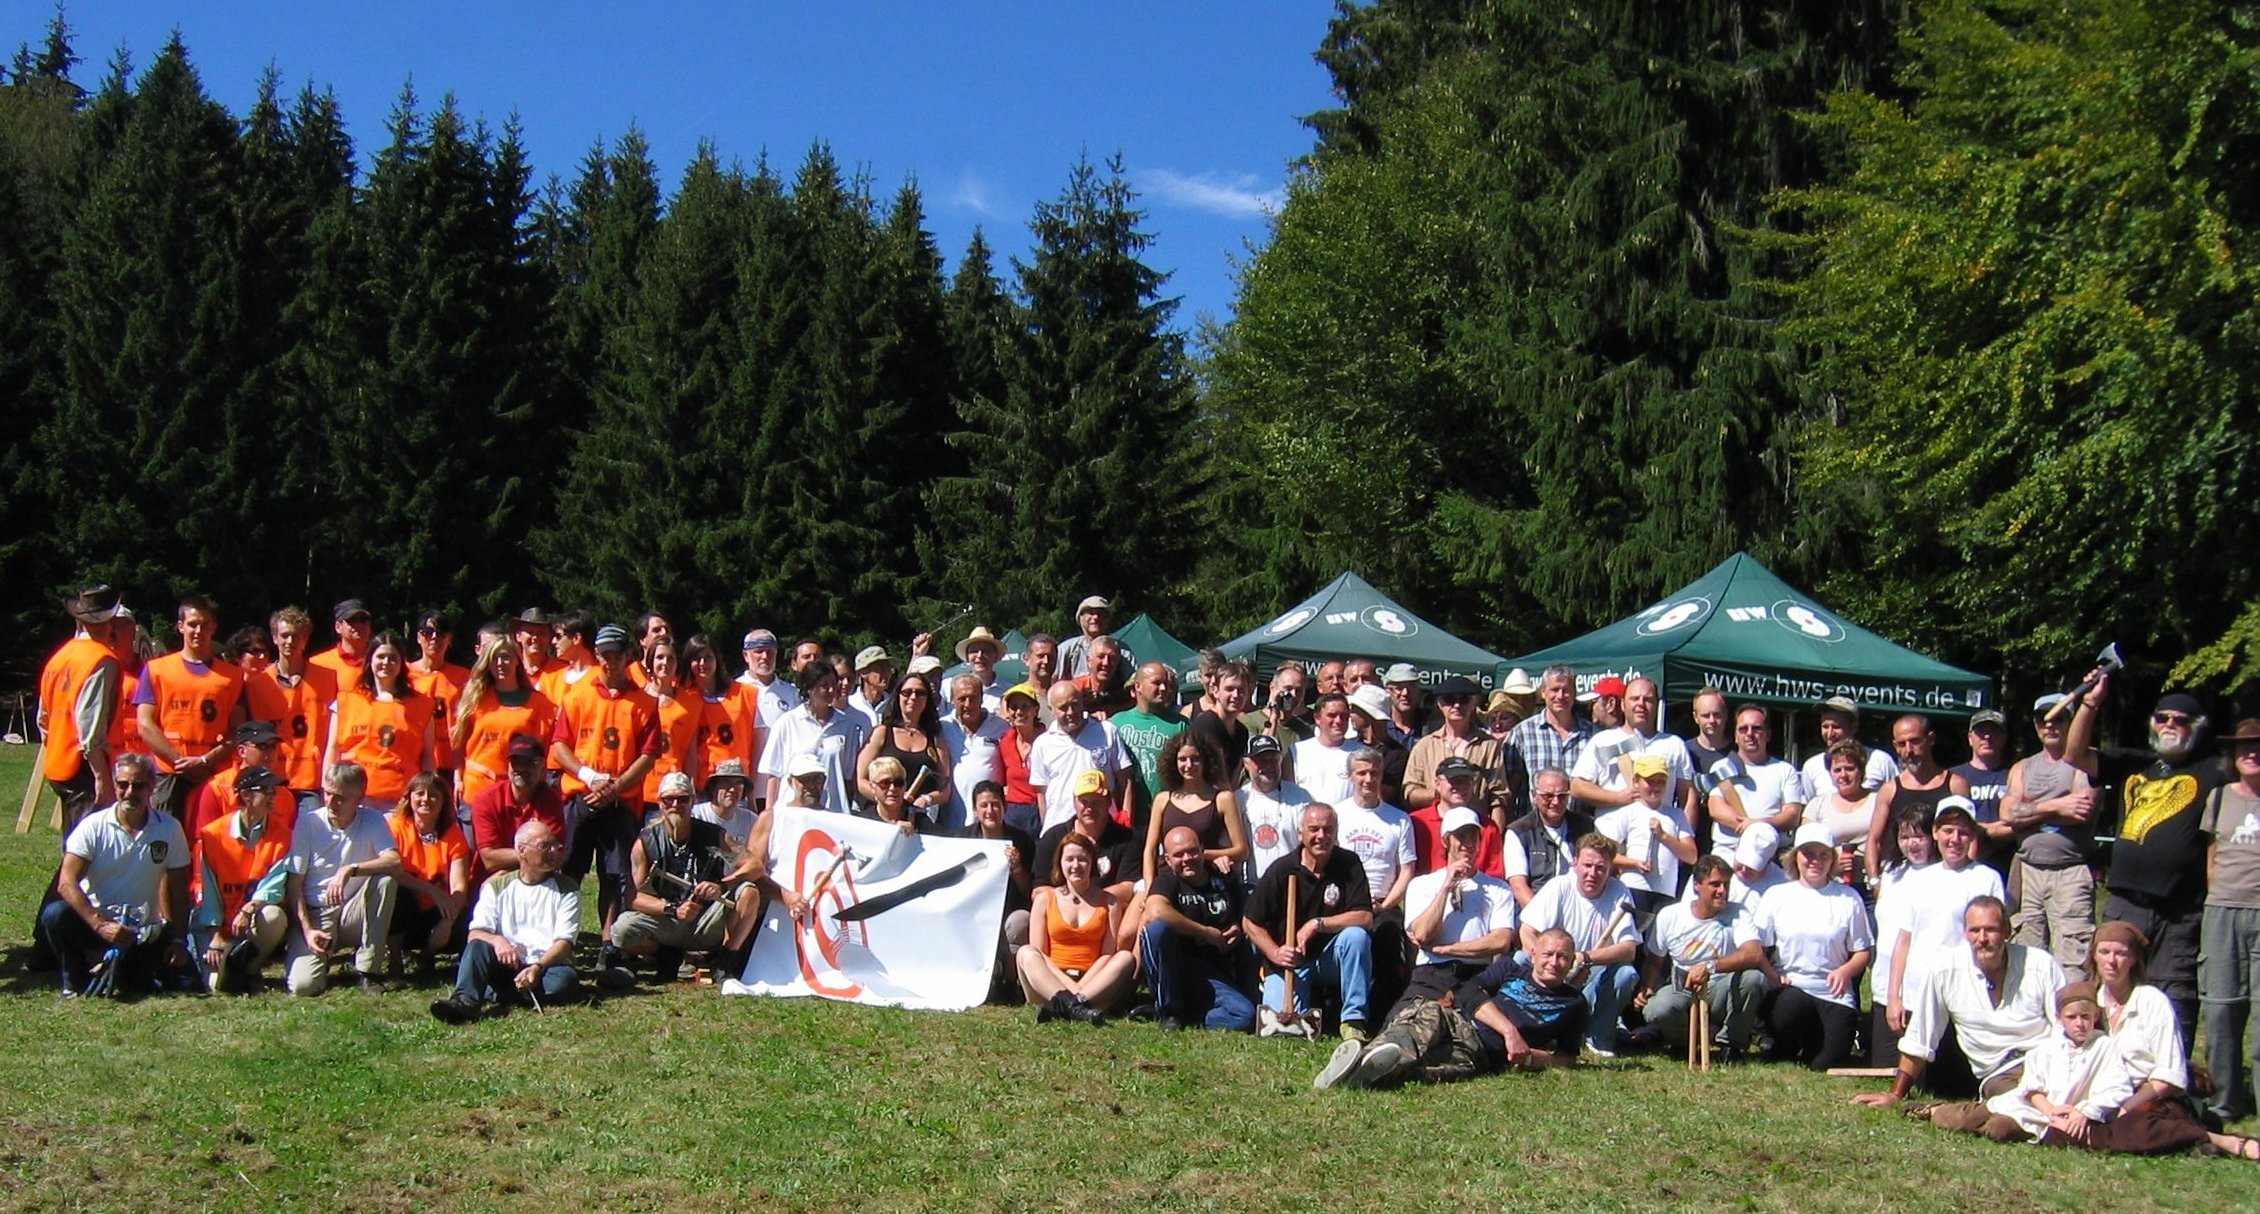 Organization: EUROTHROWERS - European Throwing Club